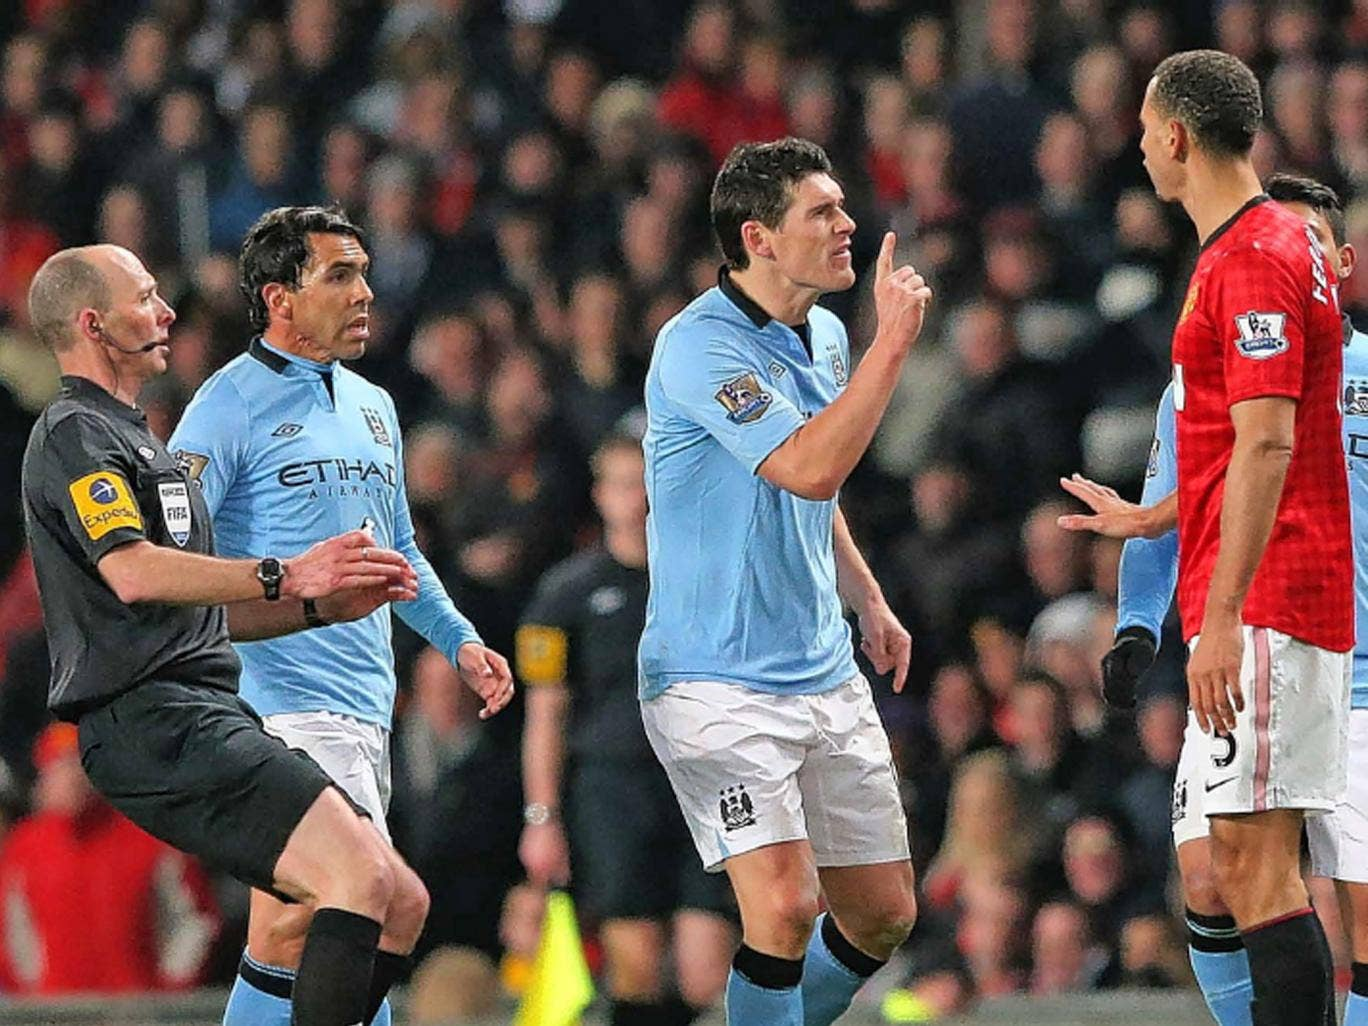 Gareth Barry and Rio Ferdinand square up to each other as tensions rise